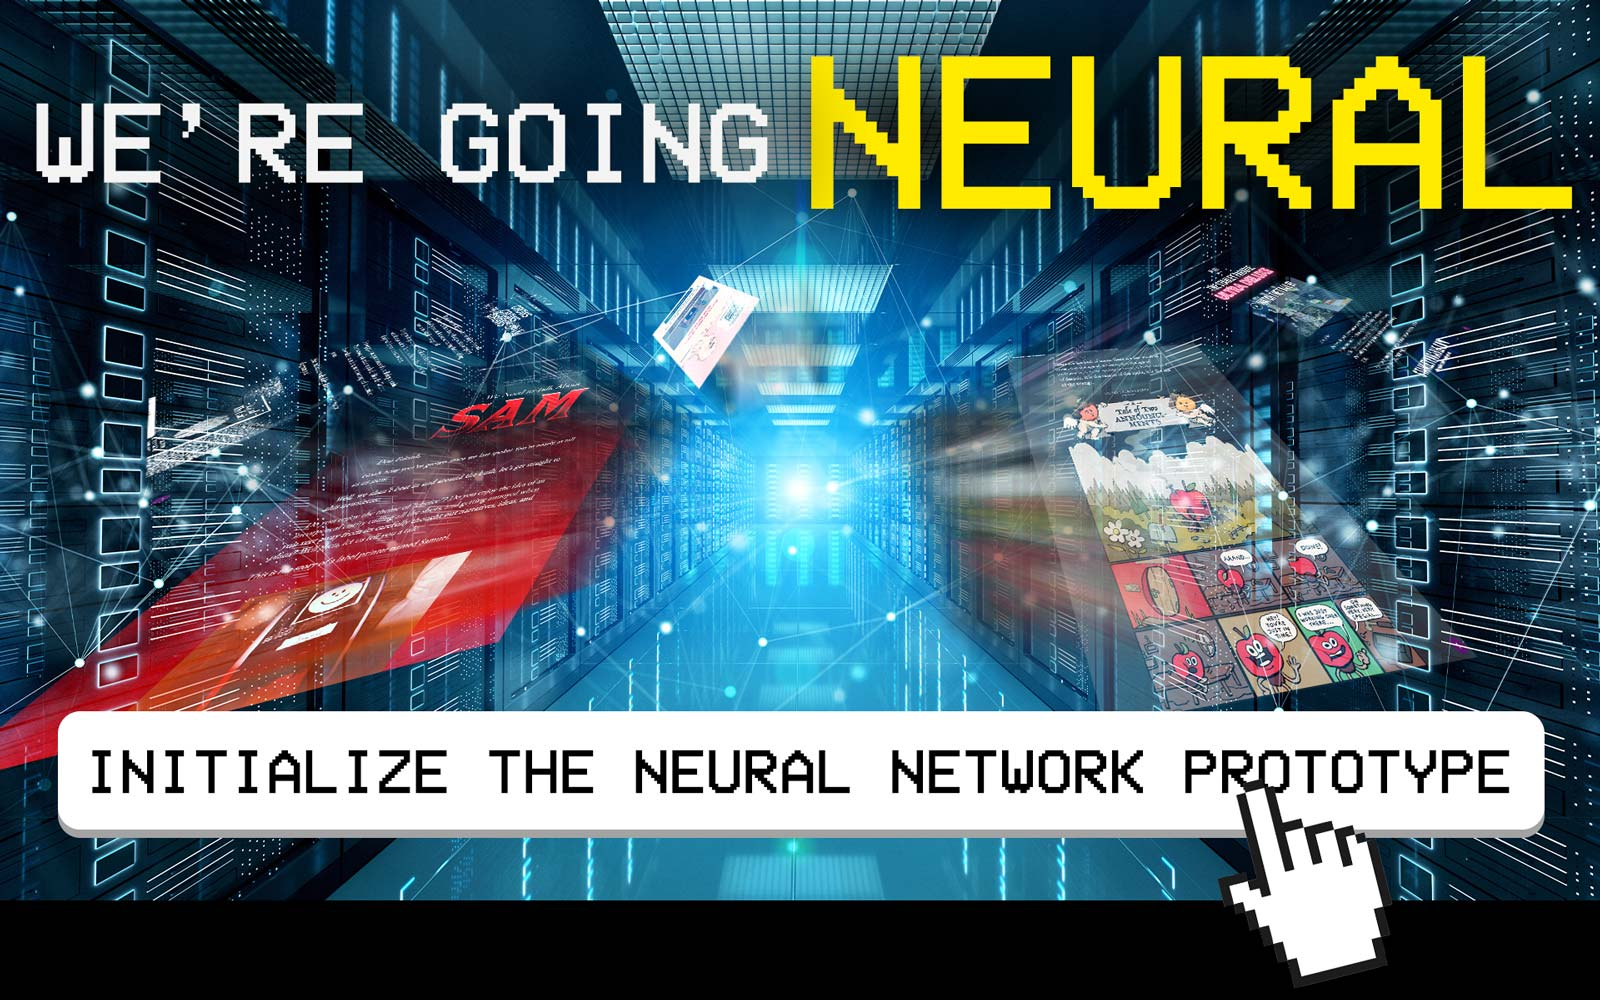 We're going neural